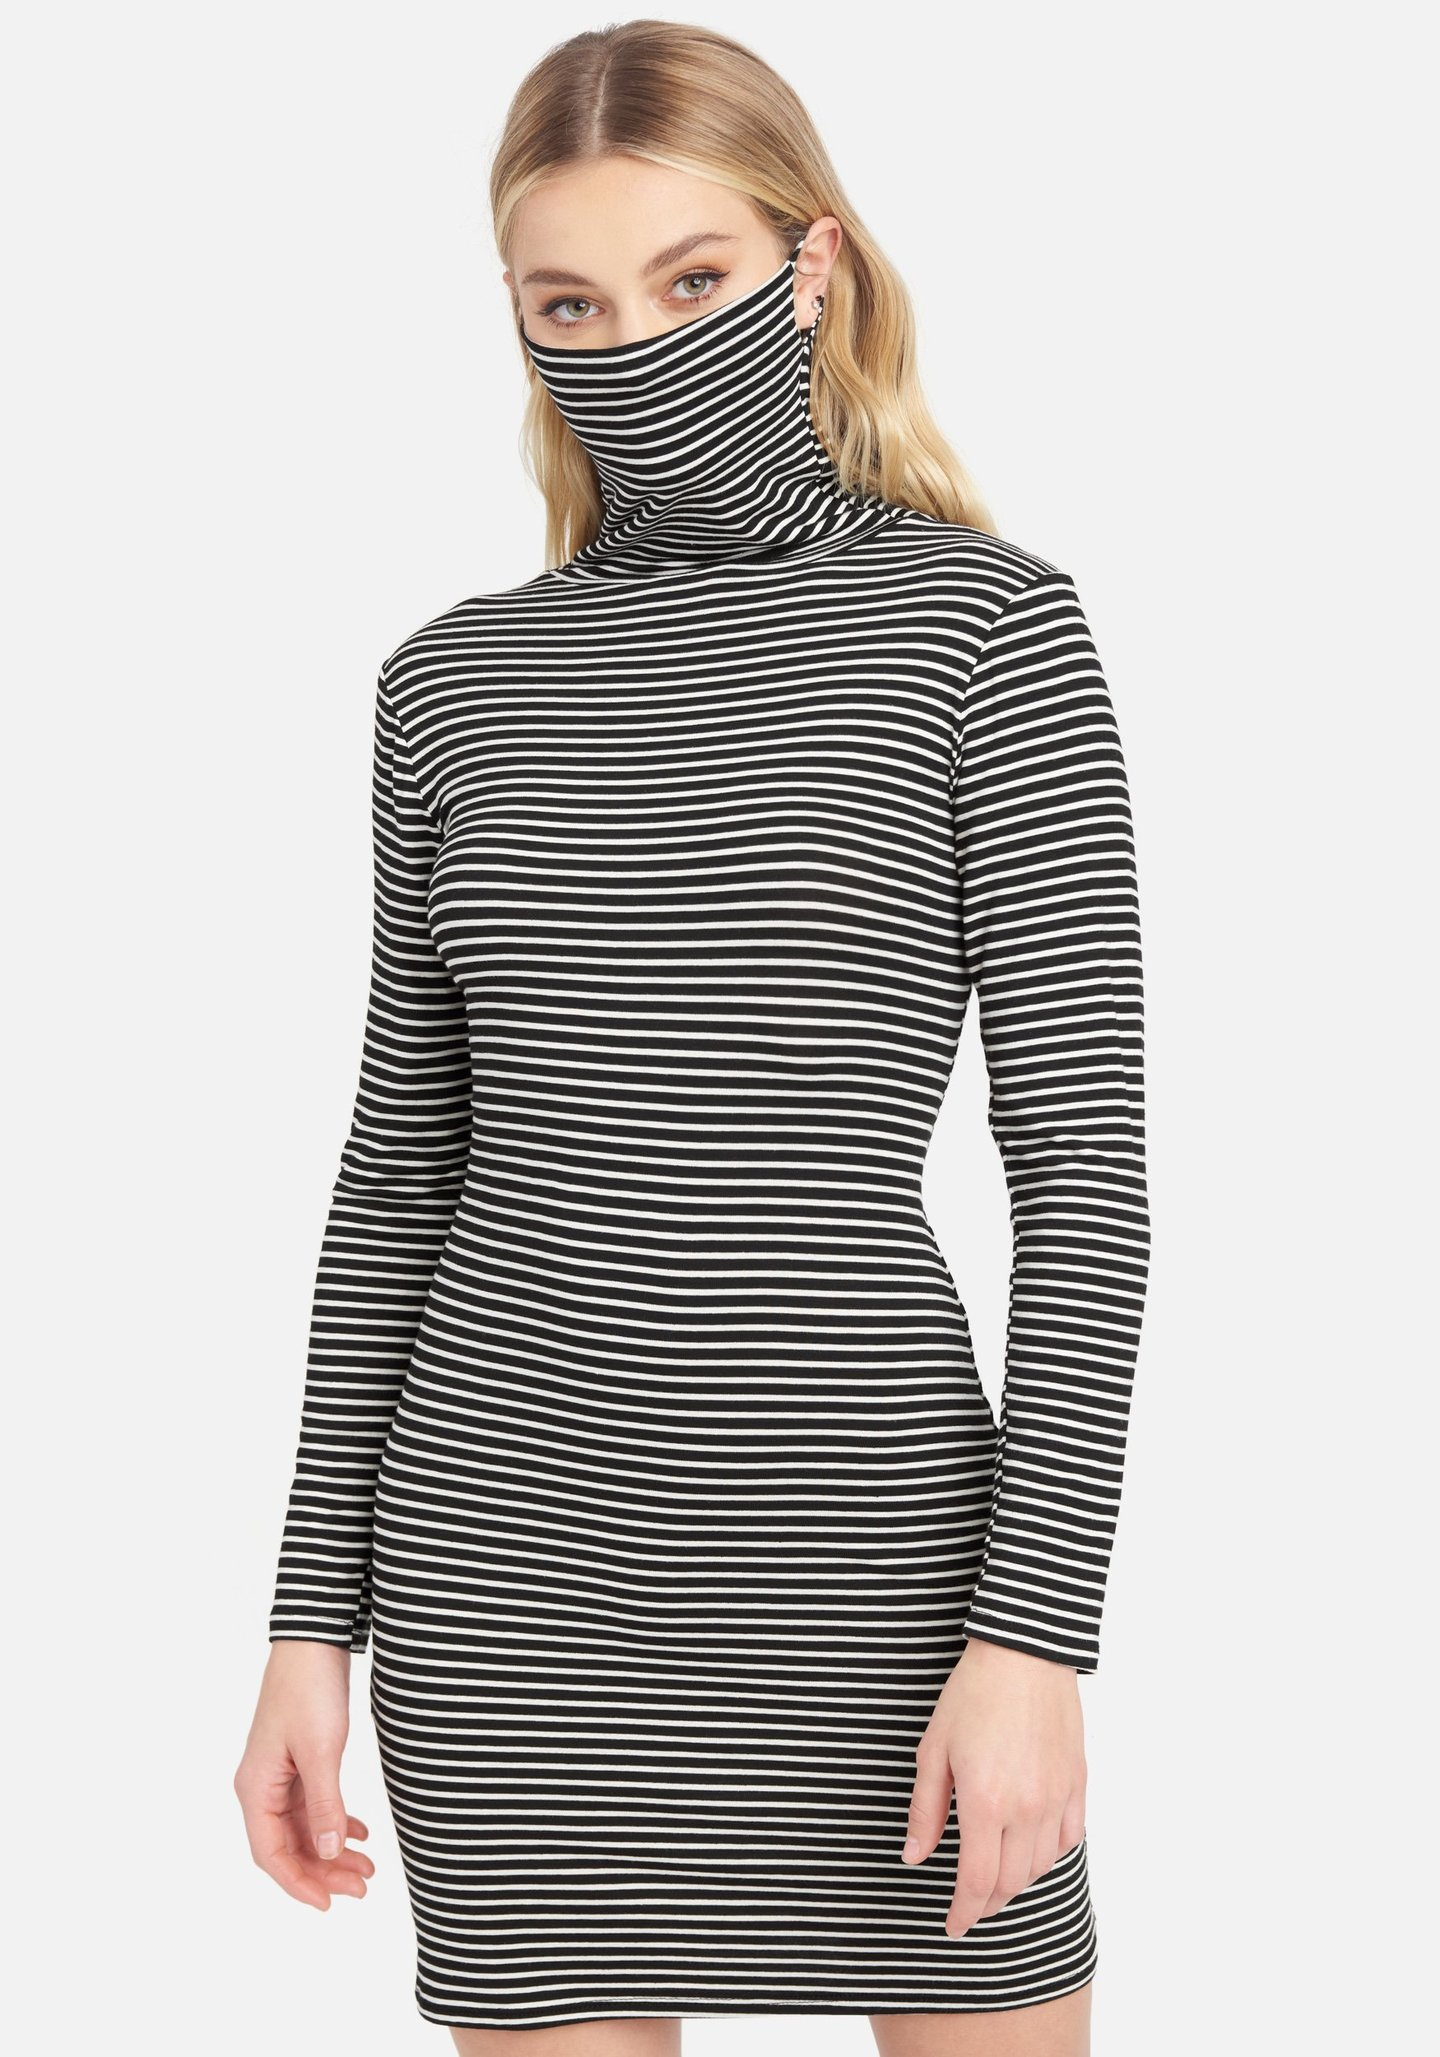 Bebe dress with attached mask